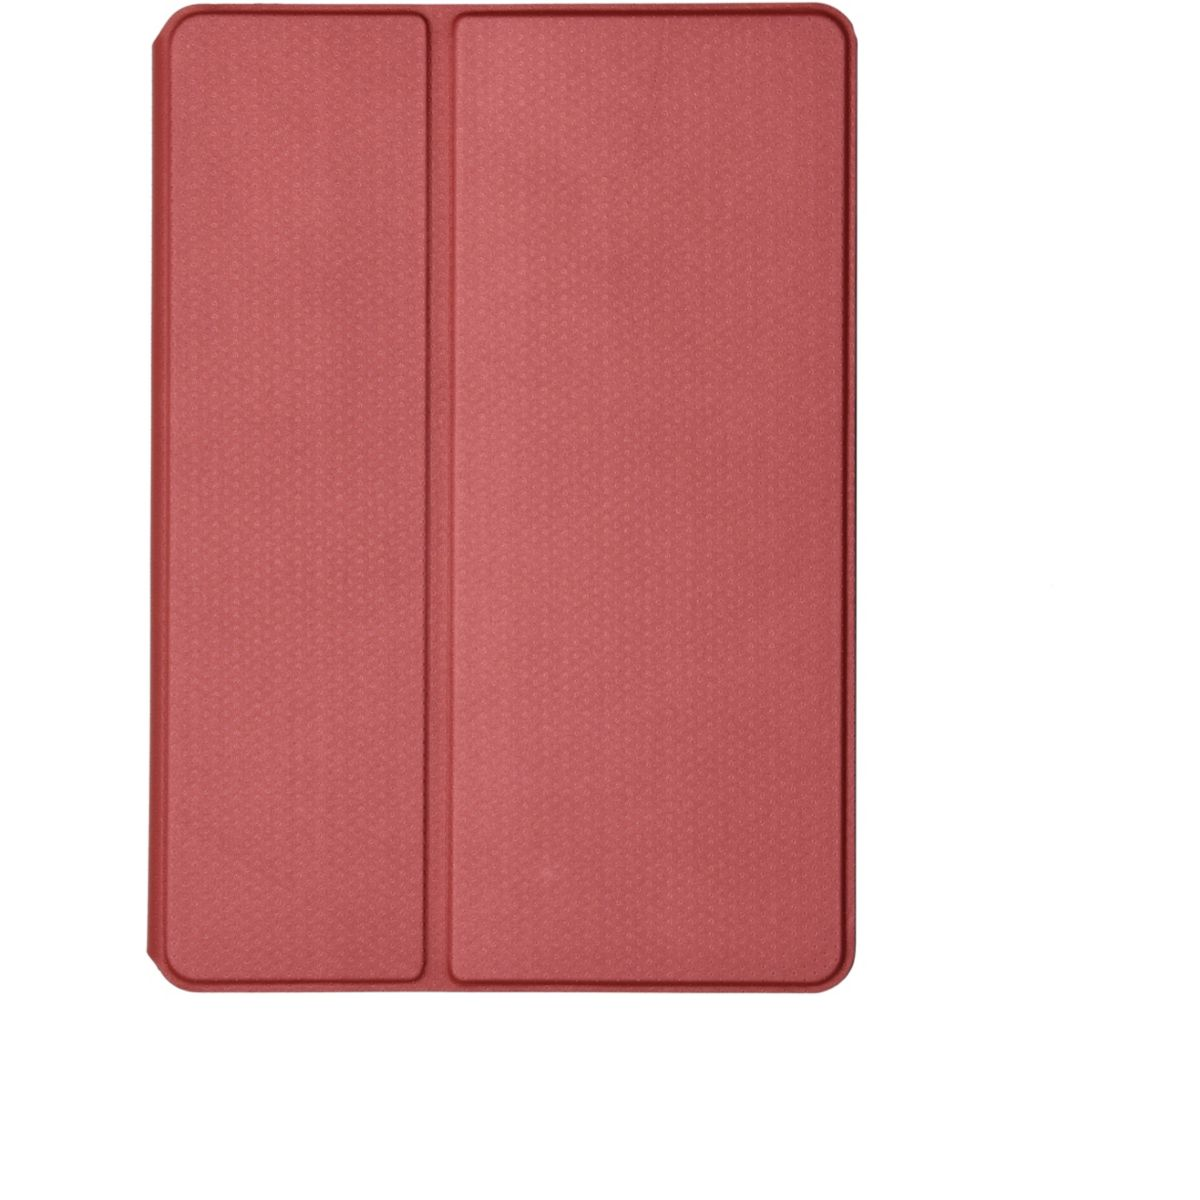 Etui ESSENTIELB iPad 9.7'' rotatif rouge (photo)